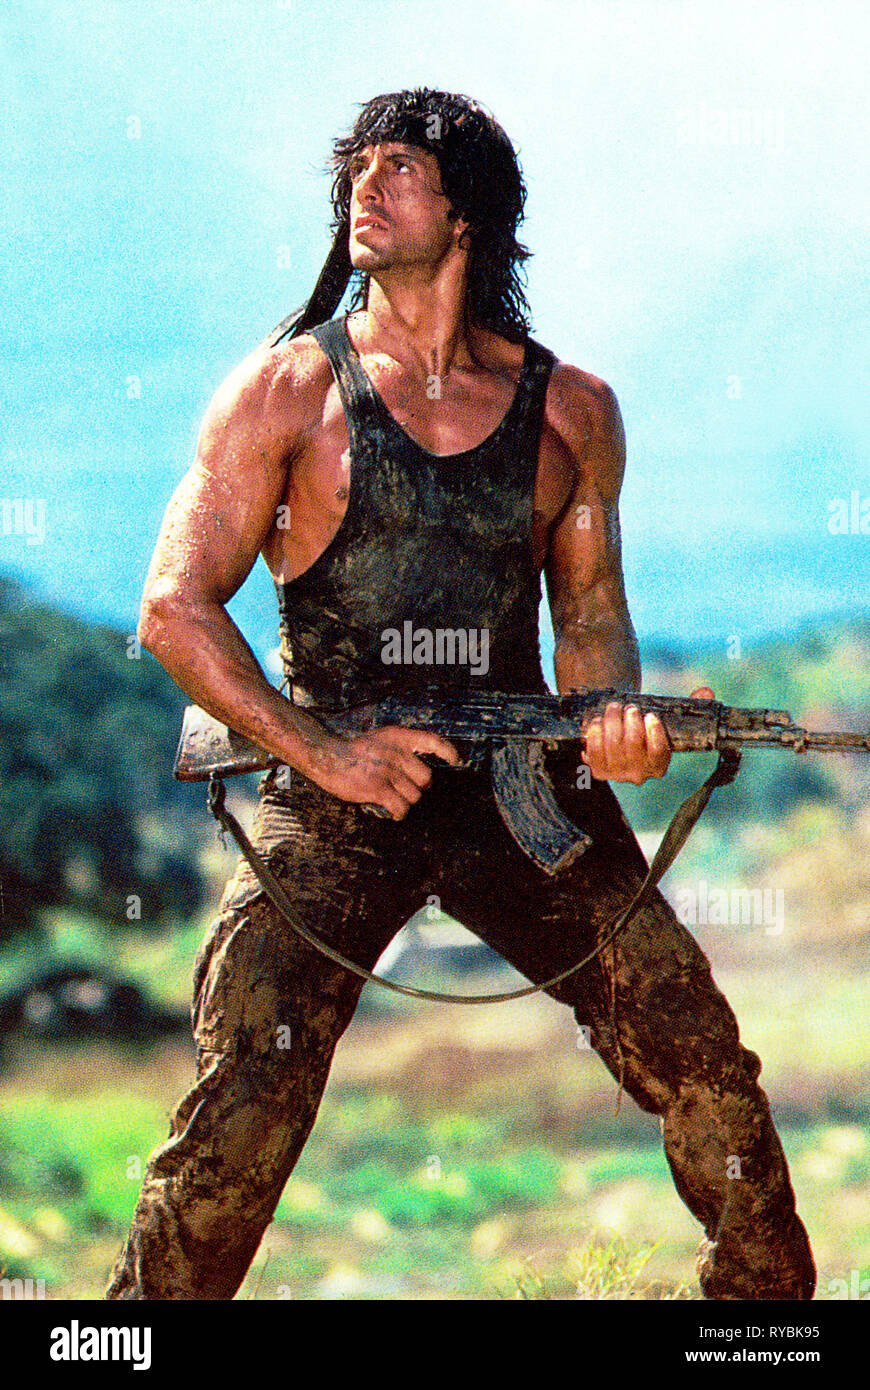 Sylvester Stallone Rambo First Blood Part Ii 1985 Stock Photo Alamy